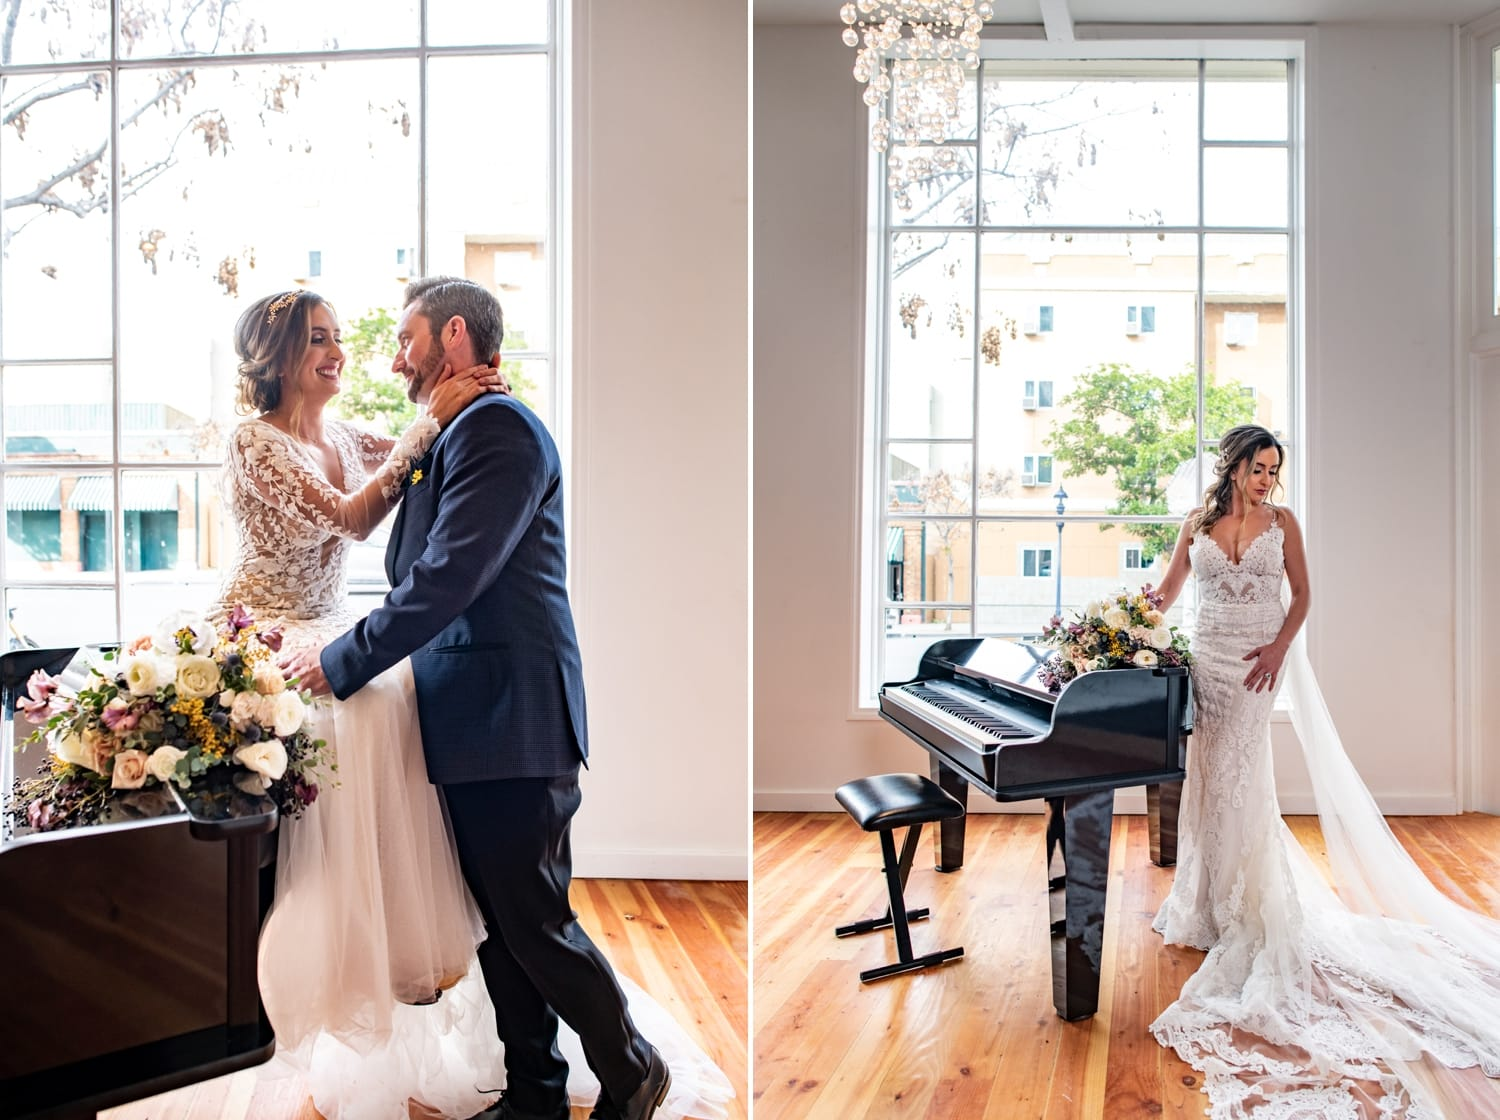 Bride and groom on a piano.